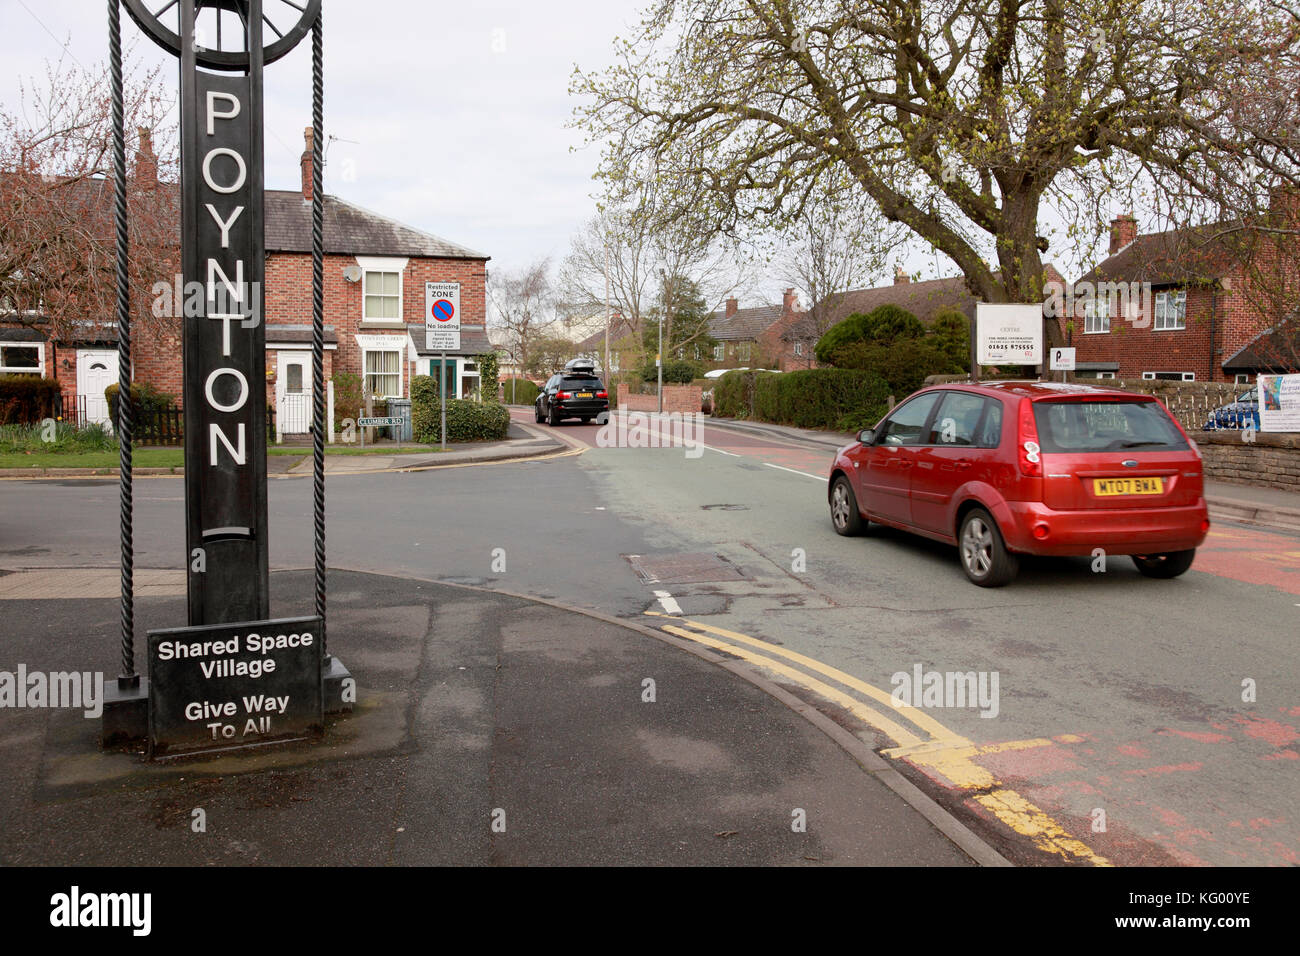 The beginning of the shared space traffic engineering project in Poynton, Cheshire - Stock Image